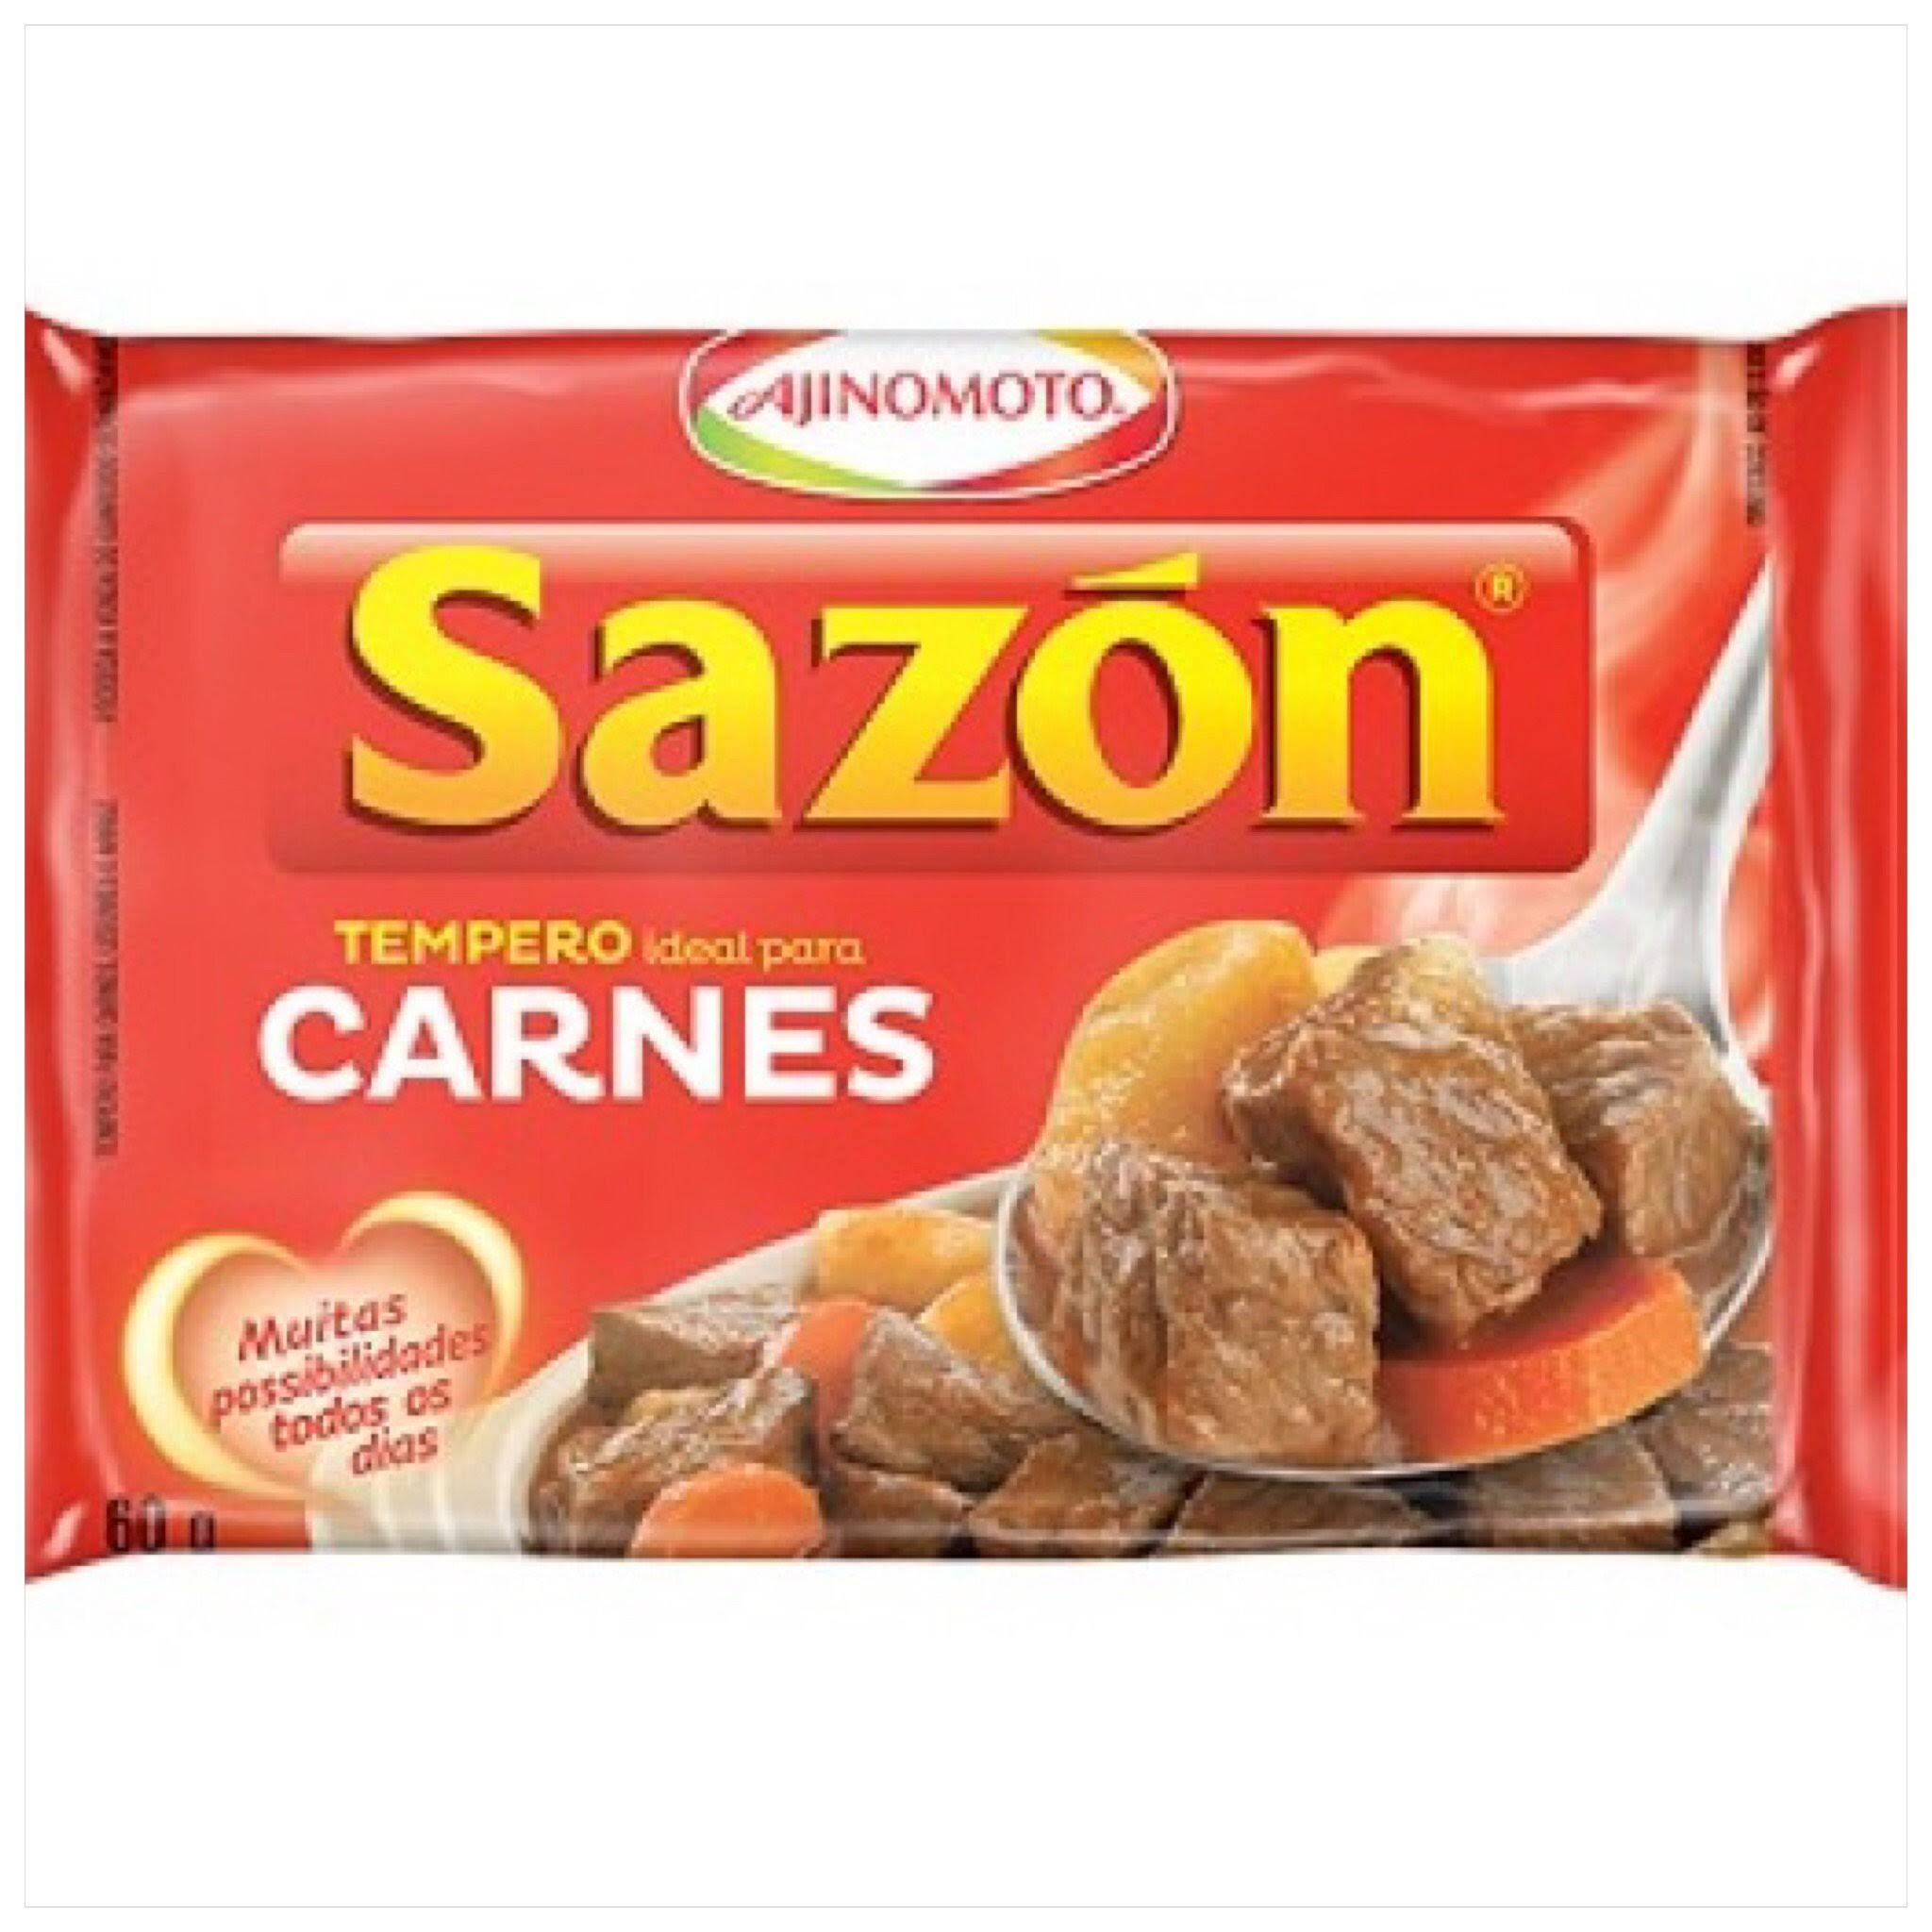 Elite Sazon Seasoning for Meats 2.11oz - Tempero Para Carnes 60g